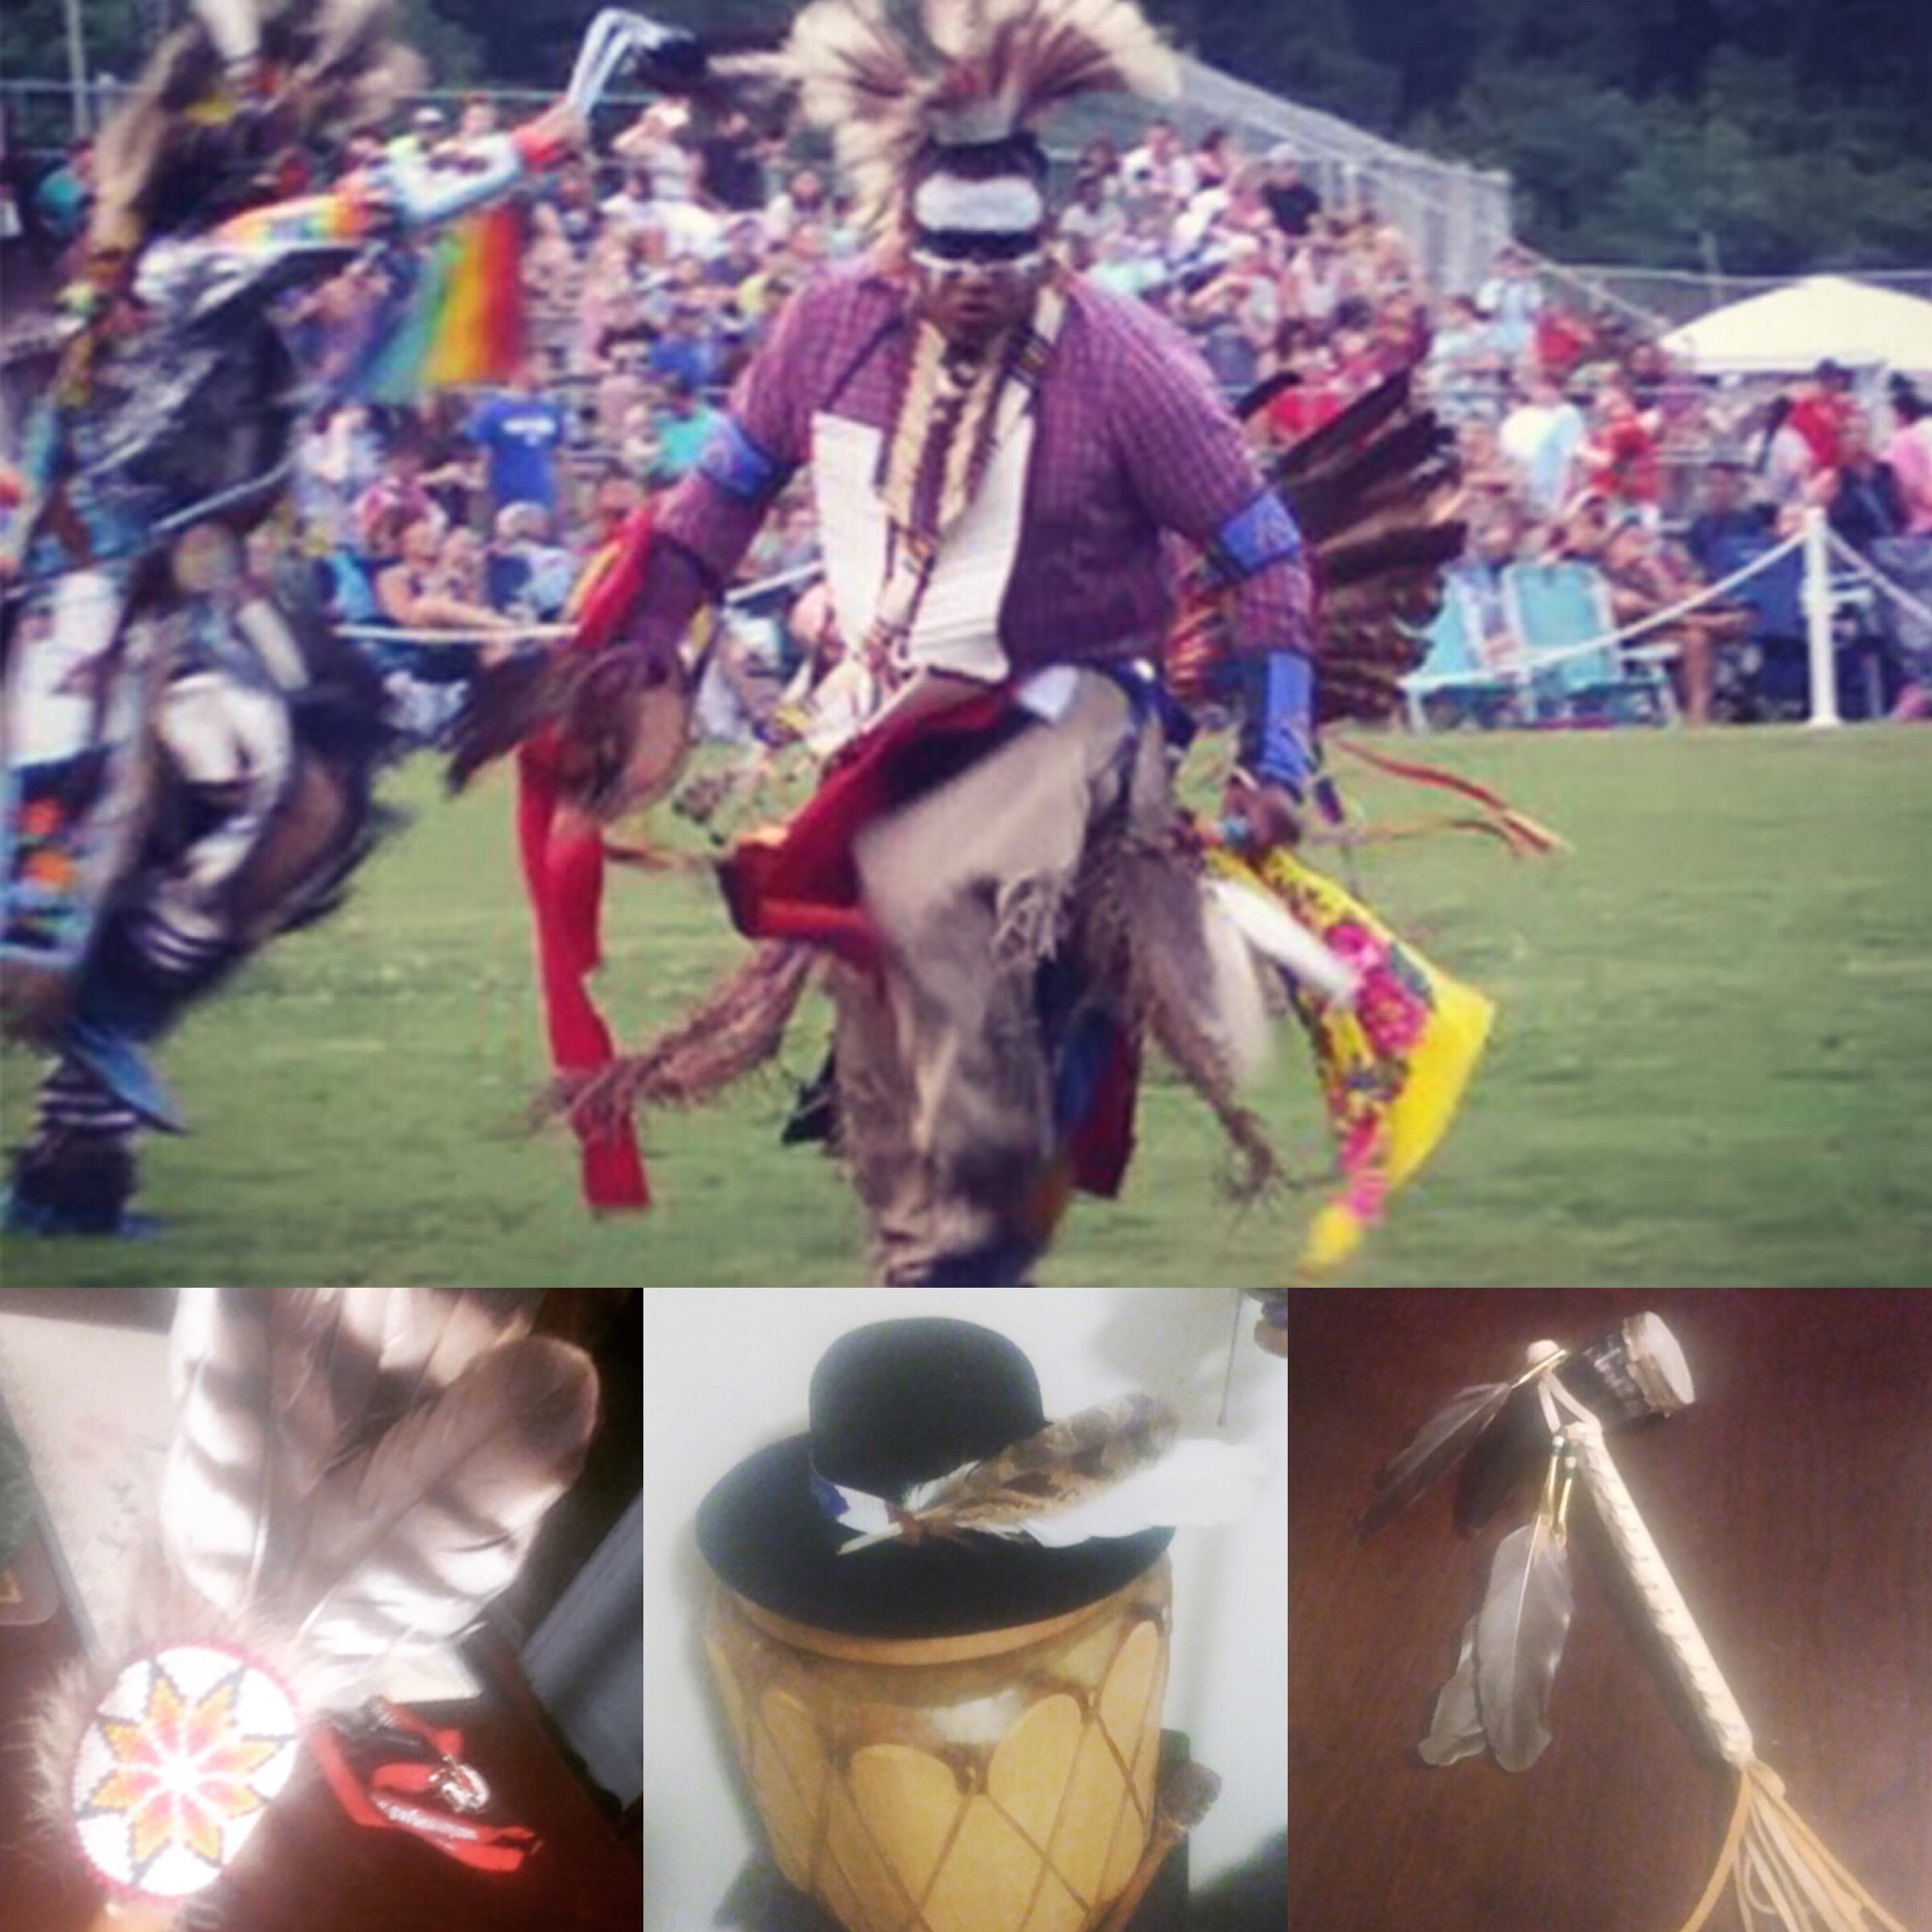 02_09 South american tribe feathers FB Insta.JPG